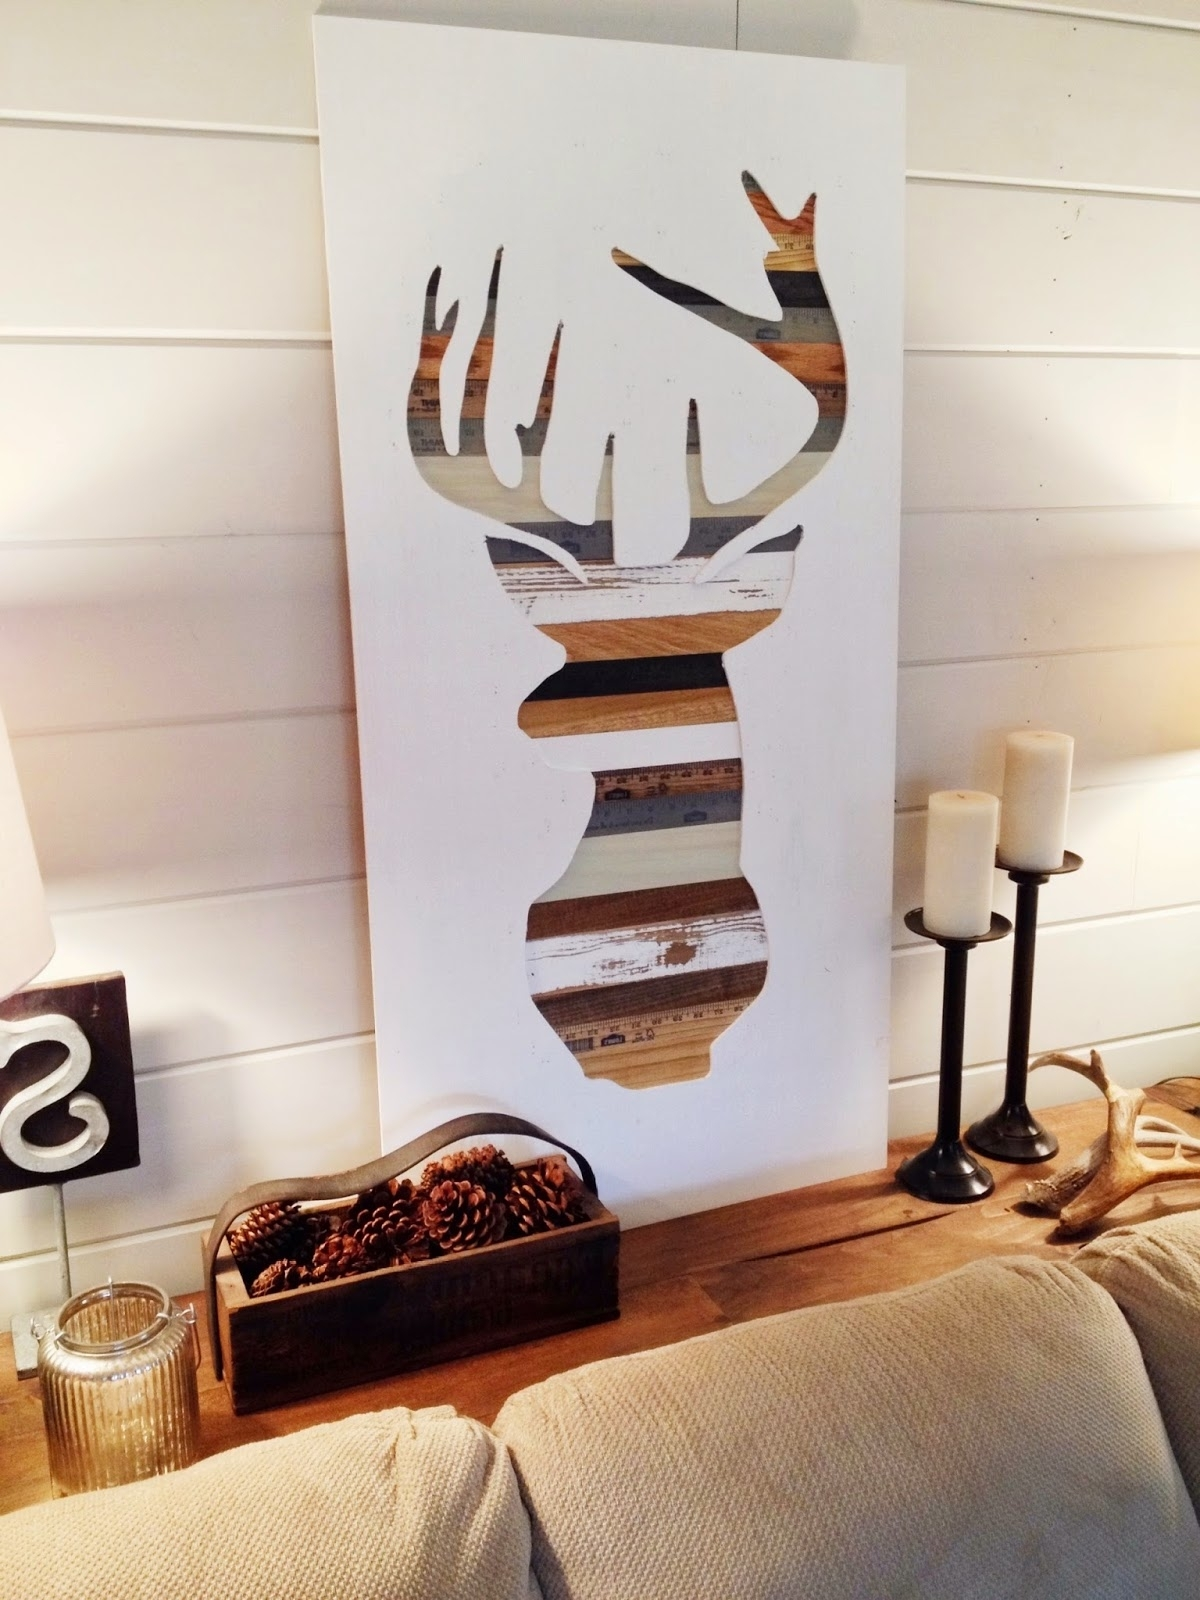 2017 Diy Wood Wall Art Projects – Sand And Sisal Throughout Diy Wood Wall Art (View 1 of 15)